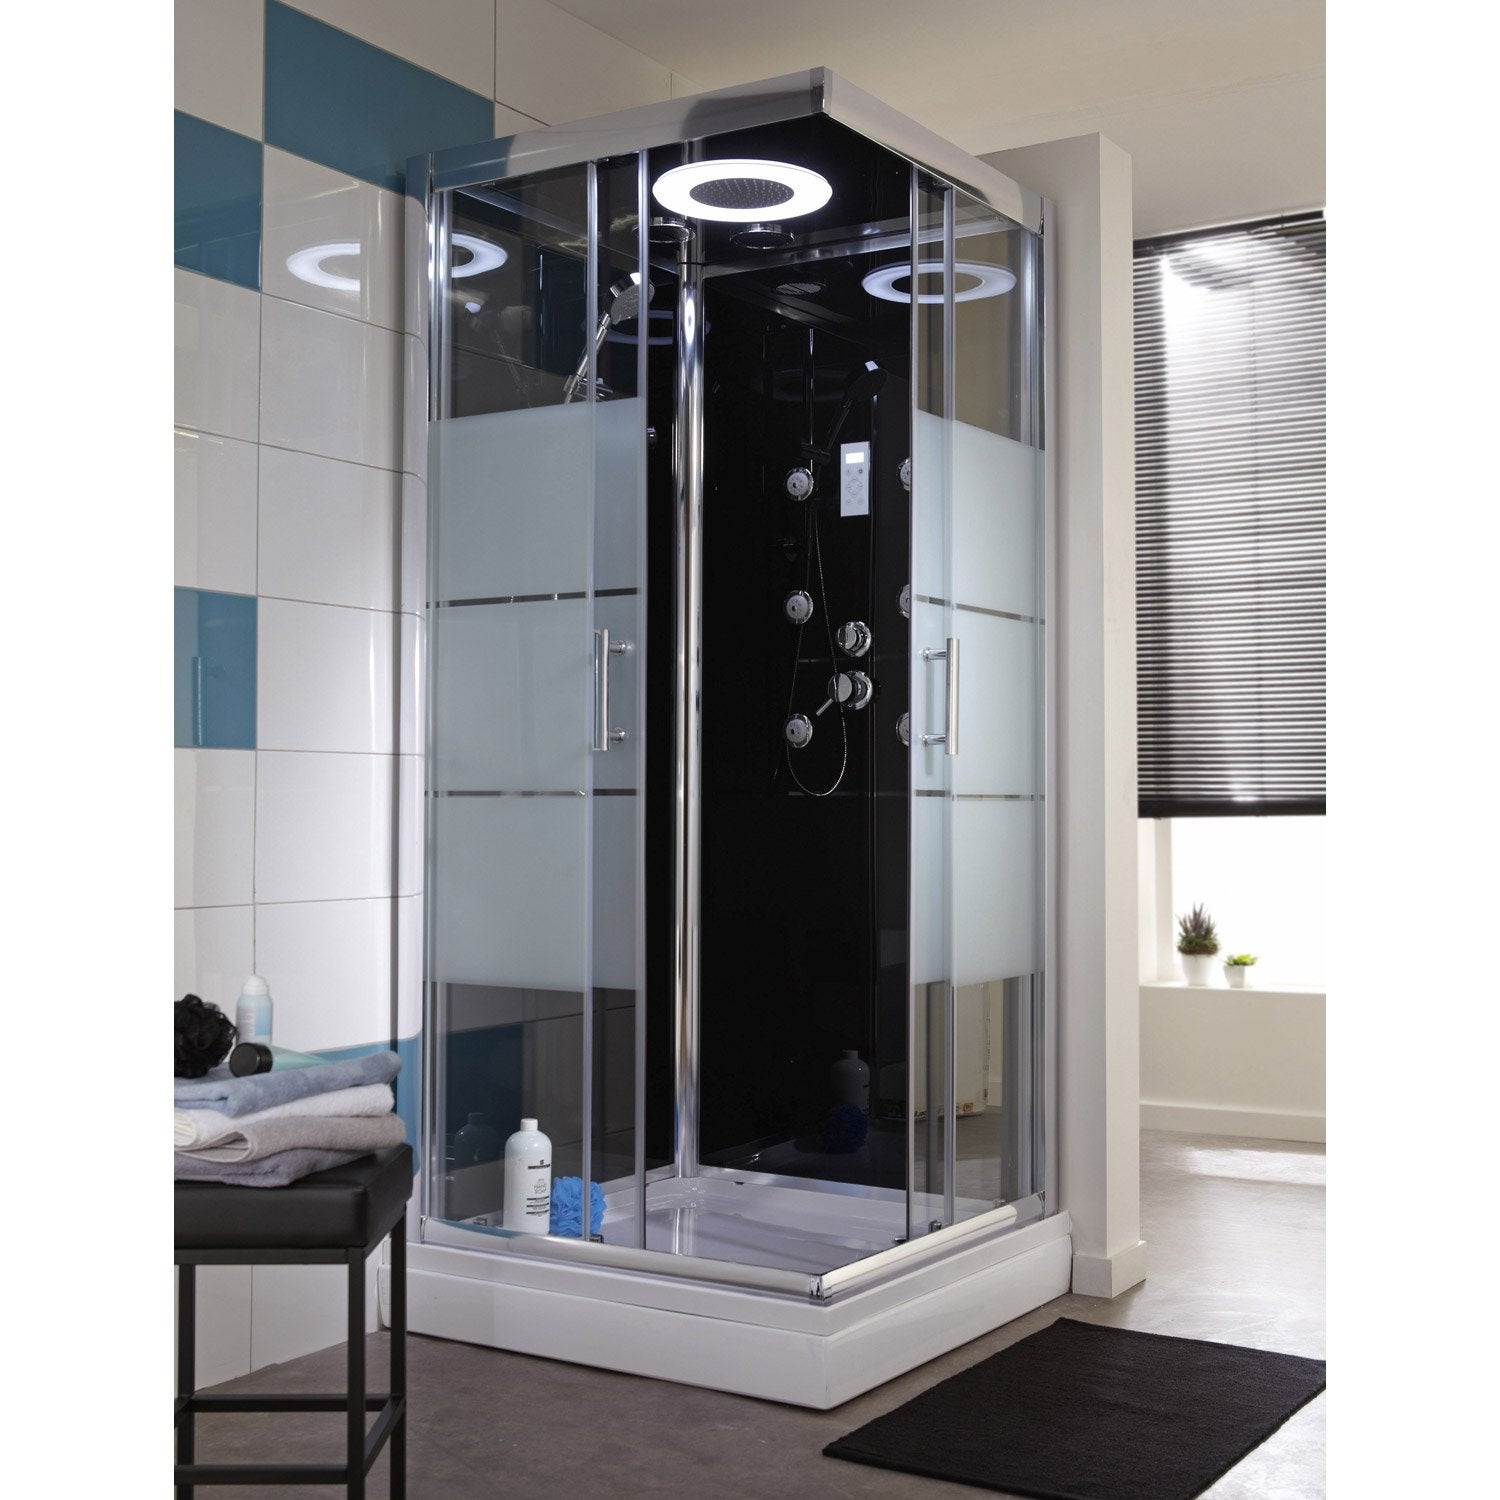 cabine de douche 80x80 pas cher avec leroy merlin brico depot. Black Bedroom Furniture Sets. Home Design Ideas